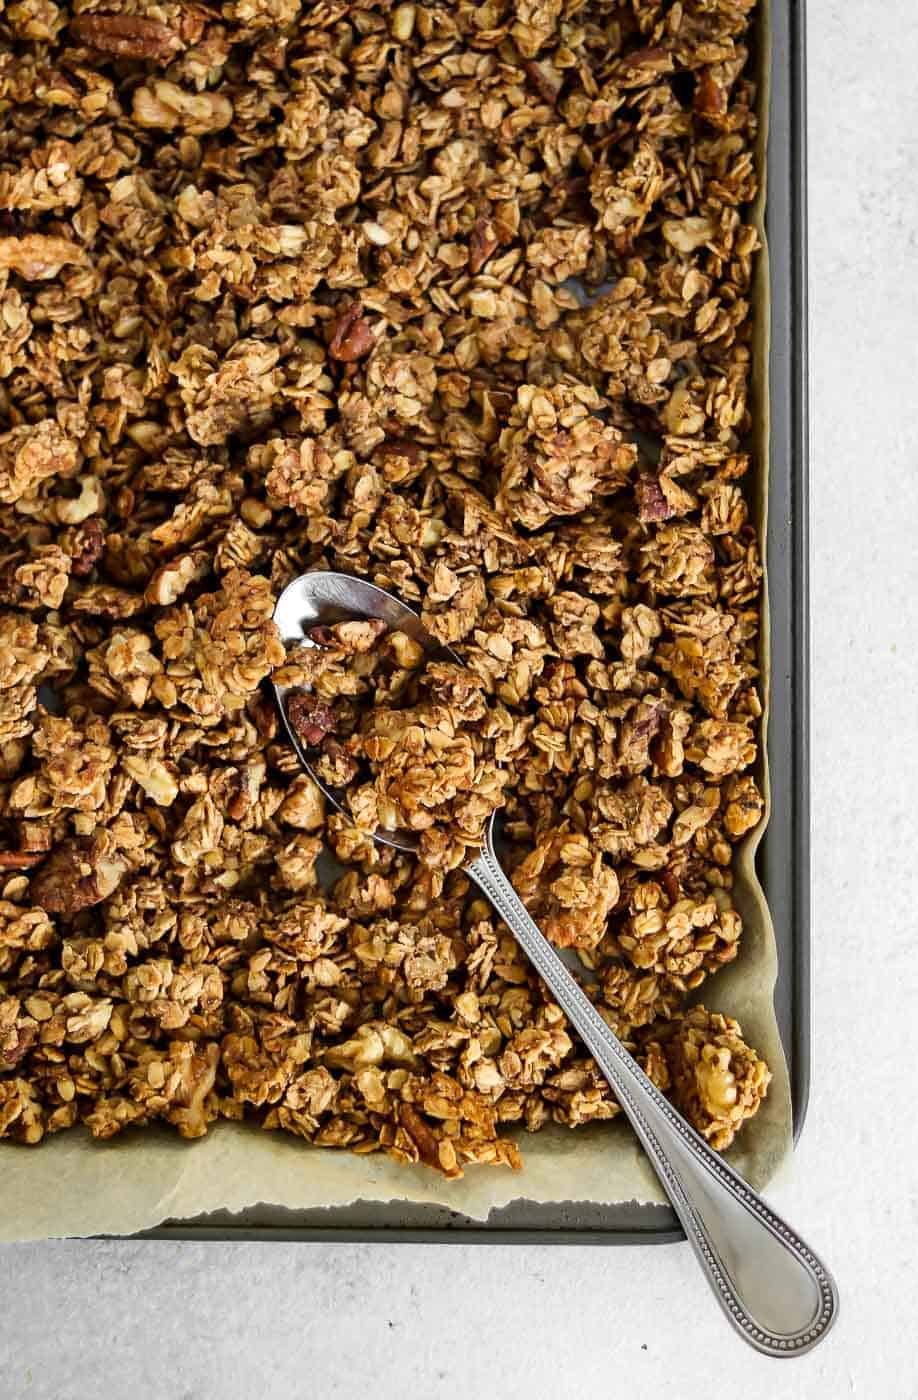 Baked granola on a baking tray with a spoon.